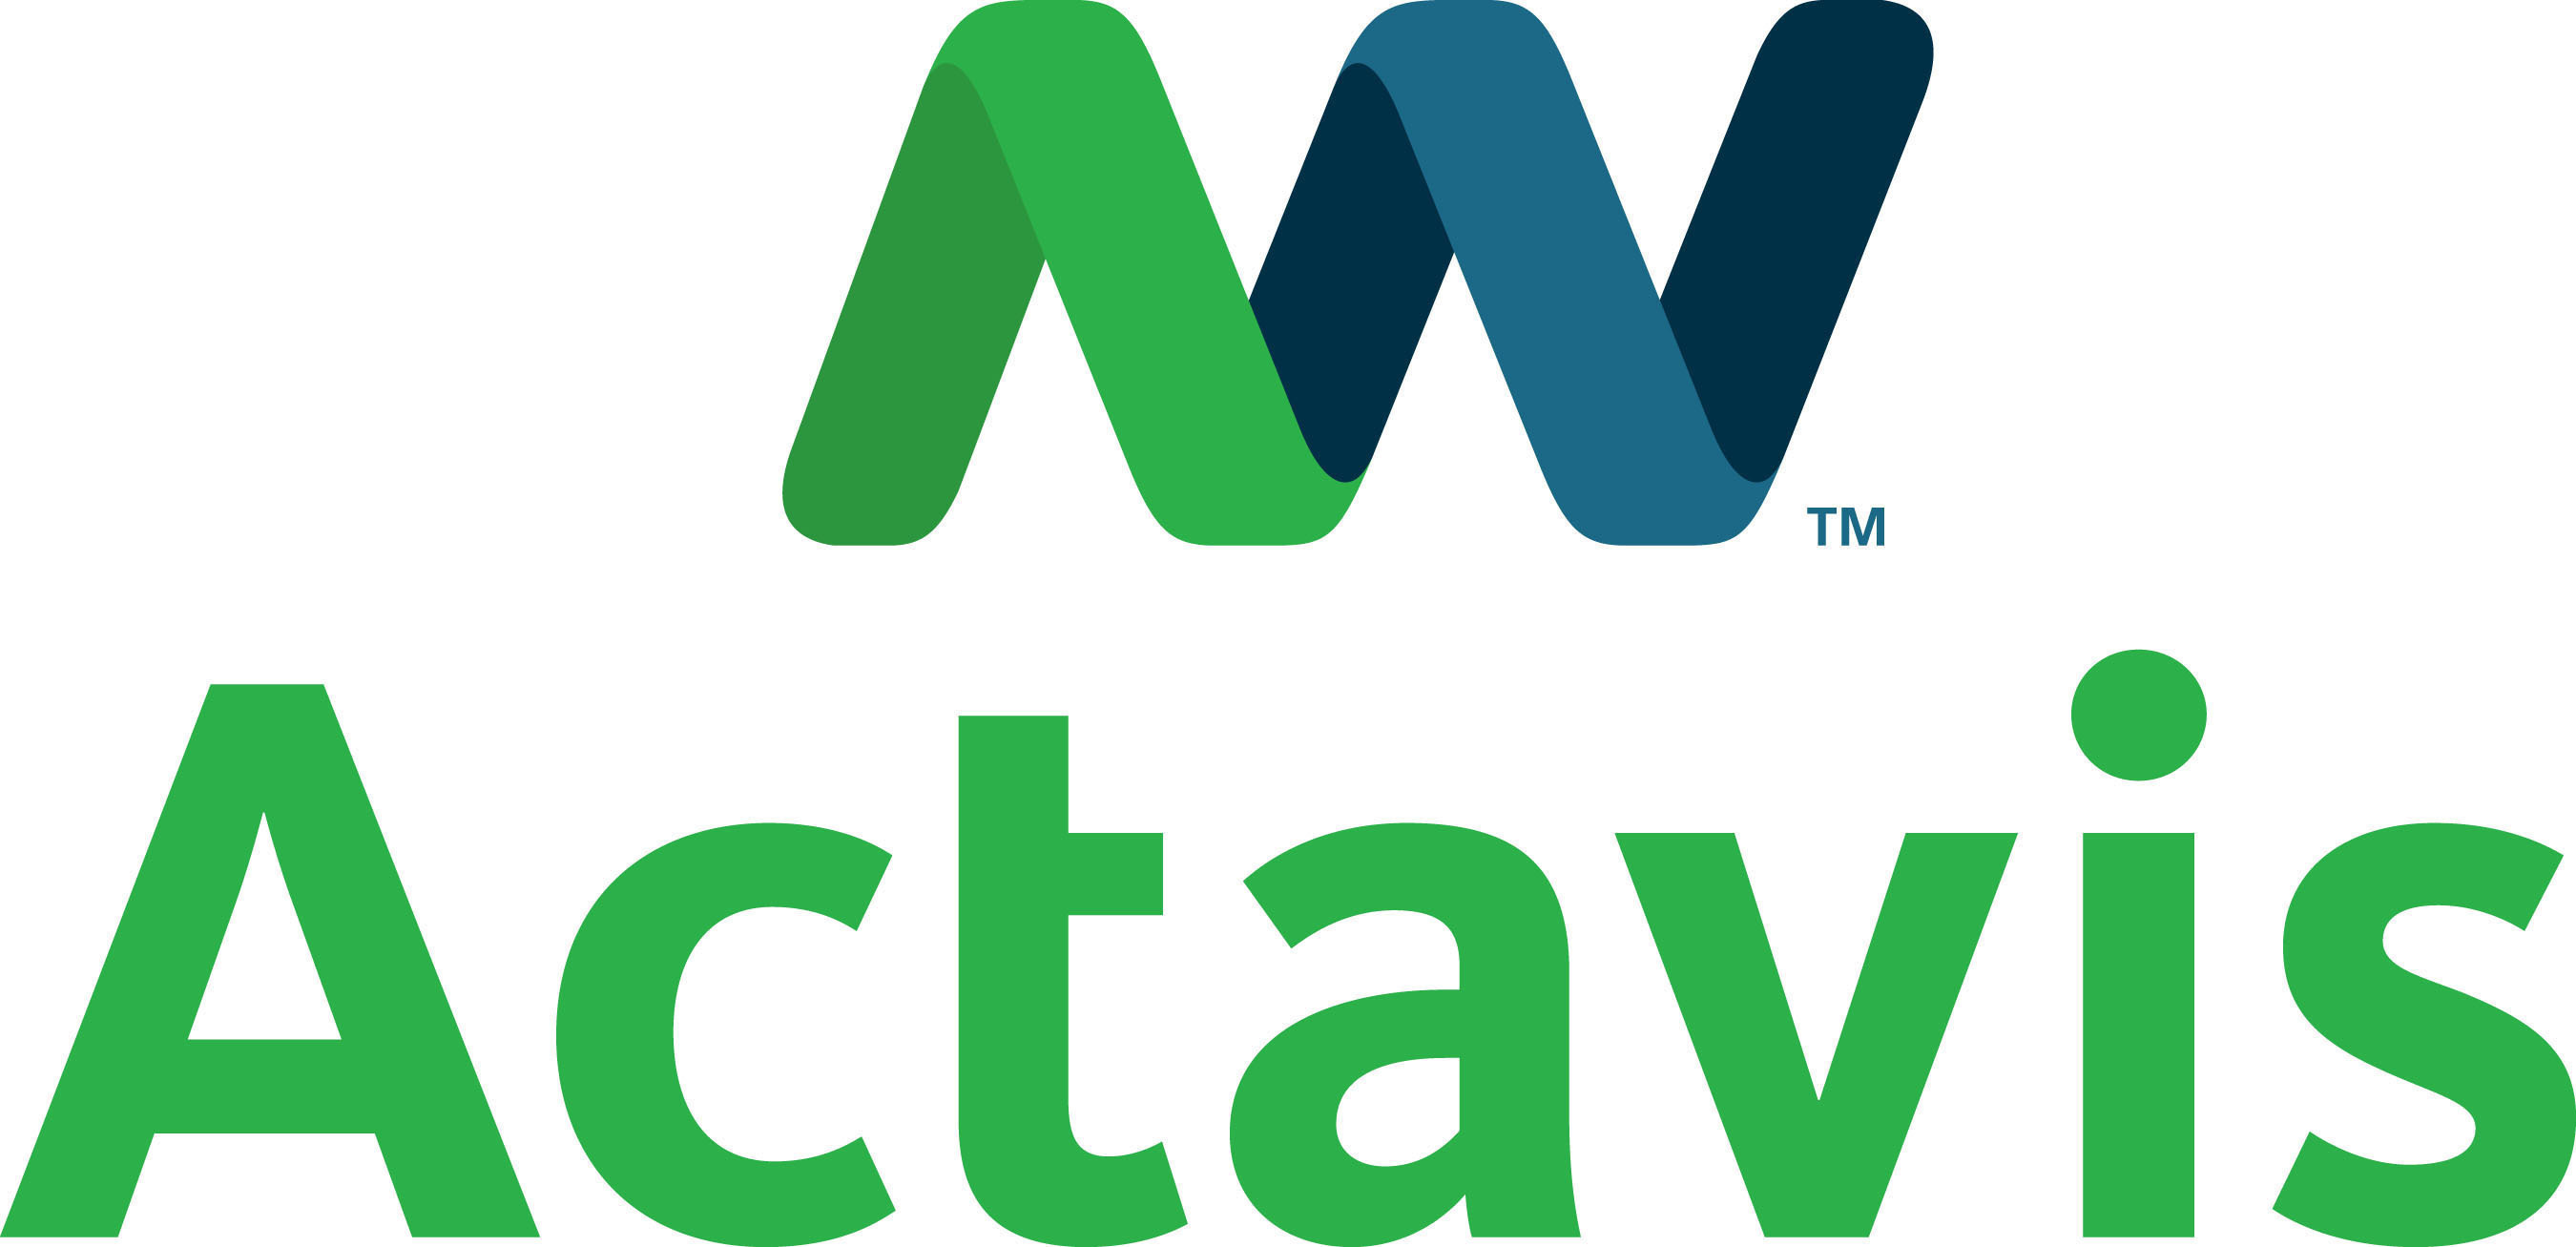 Anti-Infective Advisory Committee Recommends Approval Of Actavis' Ceftazidime-Avibactam